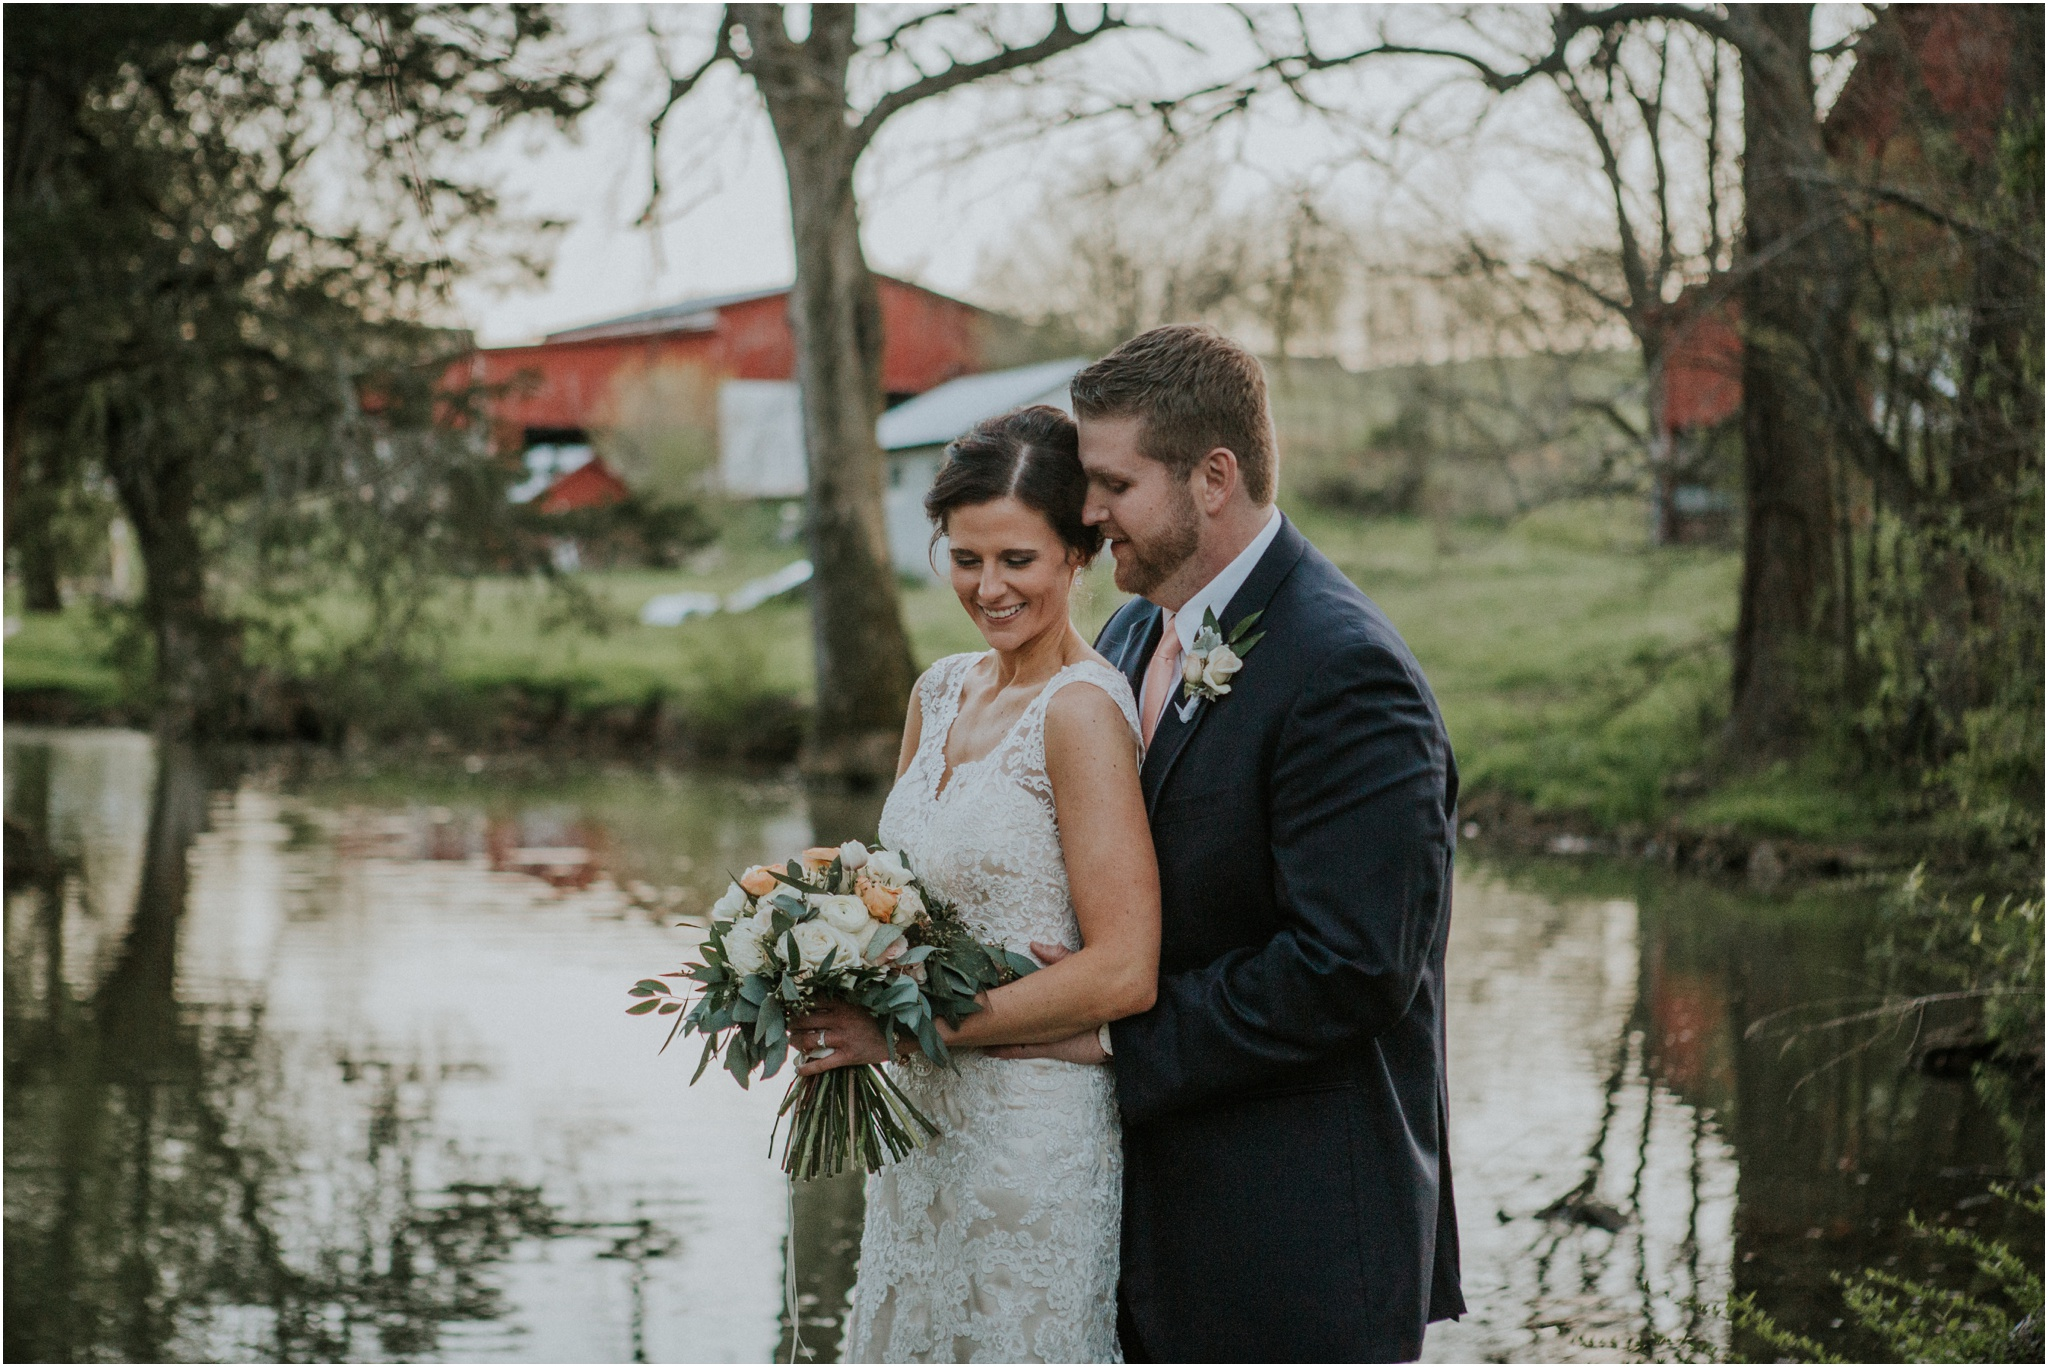 "Kayla & Aaron - ""Katy is amazing! She was so helpful from the moment that I booked her for our wedding. She gave me great vendor recommendations, she talked me through wedding timelines and helped me really relax because it was clear I could trust her judgement and experience. She was very personable and cared so much about our day, and was very responsive anytime I reached out with a question. I was so blown away by the pictures she captured. She really told the story of our day and captured every emotion so beautifully!Our first look was so special, and I credit her to taking such care of those sweet moments for us - and capturing it all in such a stunning way. She felt like a side-kick, friend, and photographer on our wedding day, and we couldn't have possibly been any happier with the outcome. I'll recommend her over and over again!"""